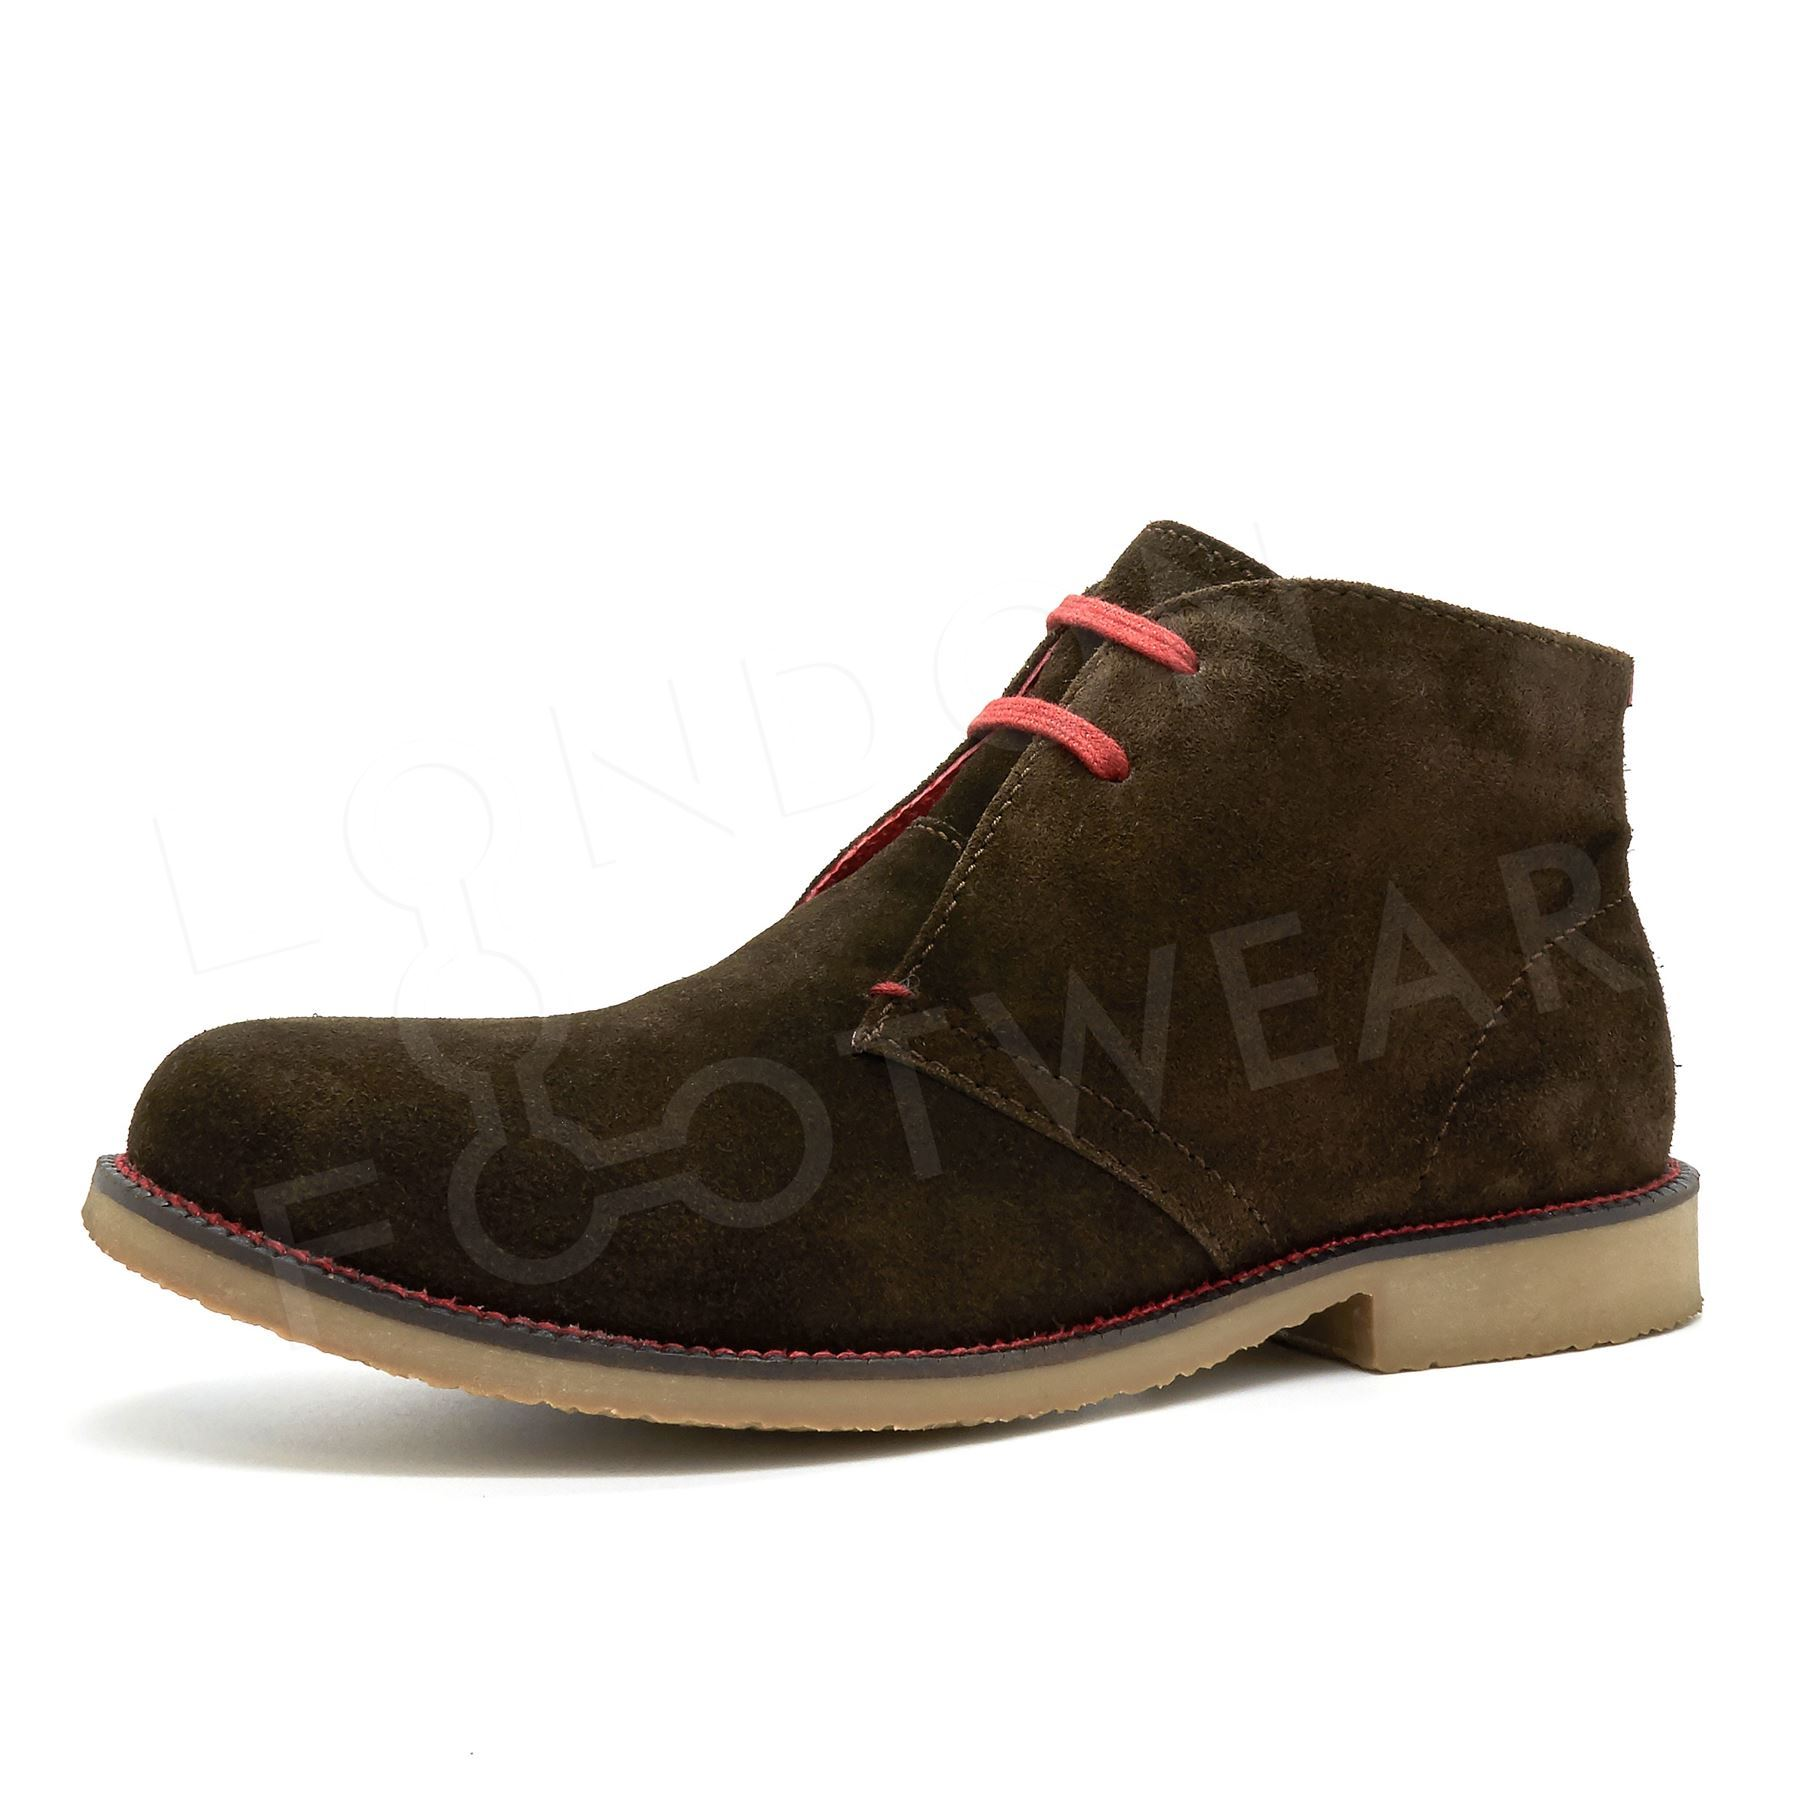 new mens suede leather desert chukka ankle boots casual lace up shoes size 6 11 ebay. Black Bedroom Furniture Sets. Home Design Ideas